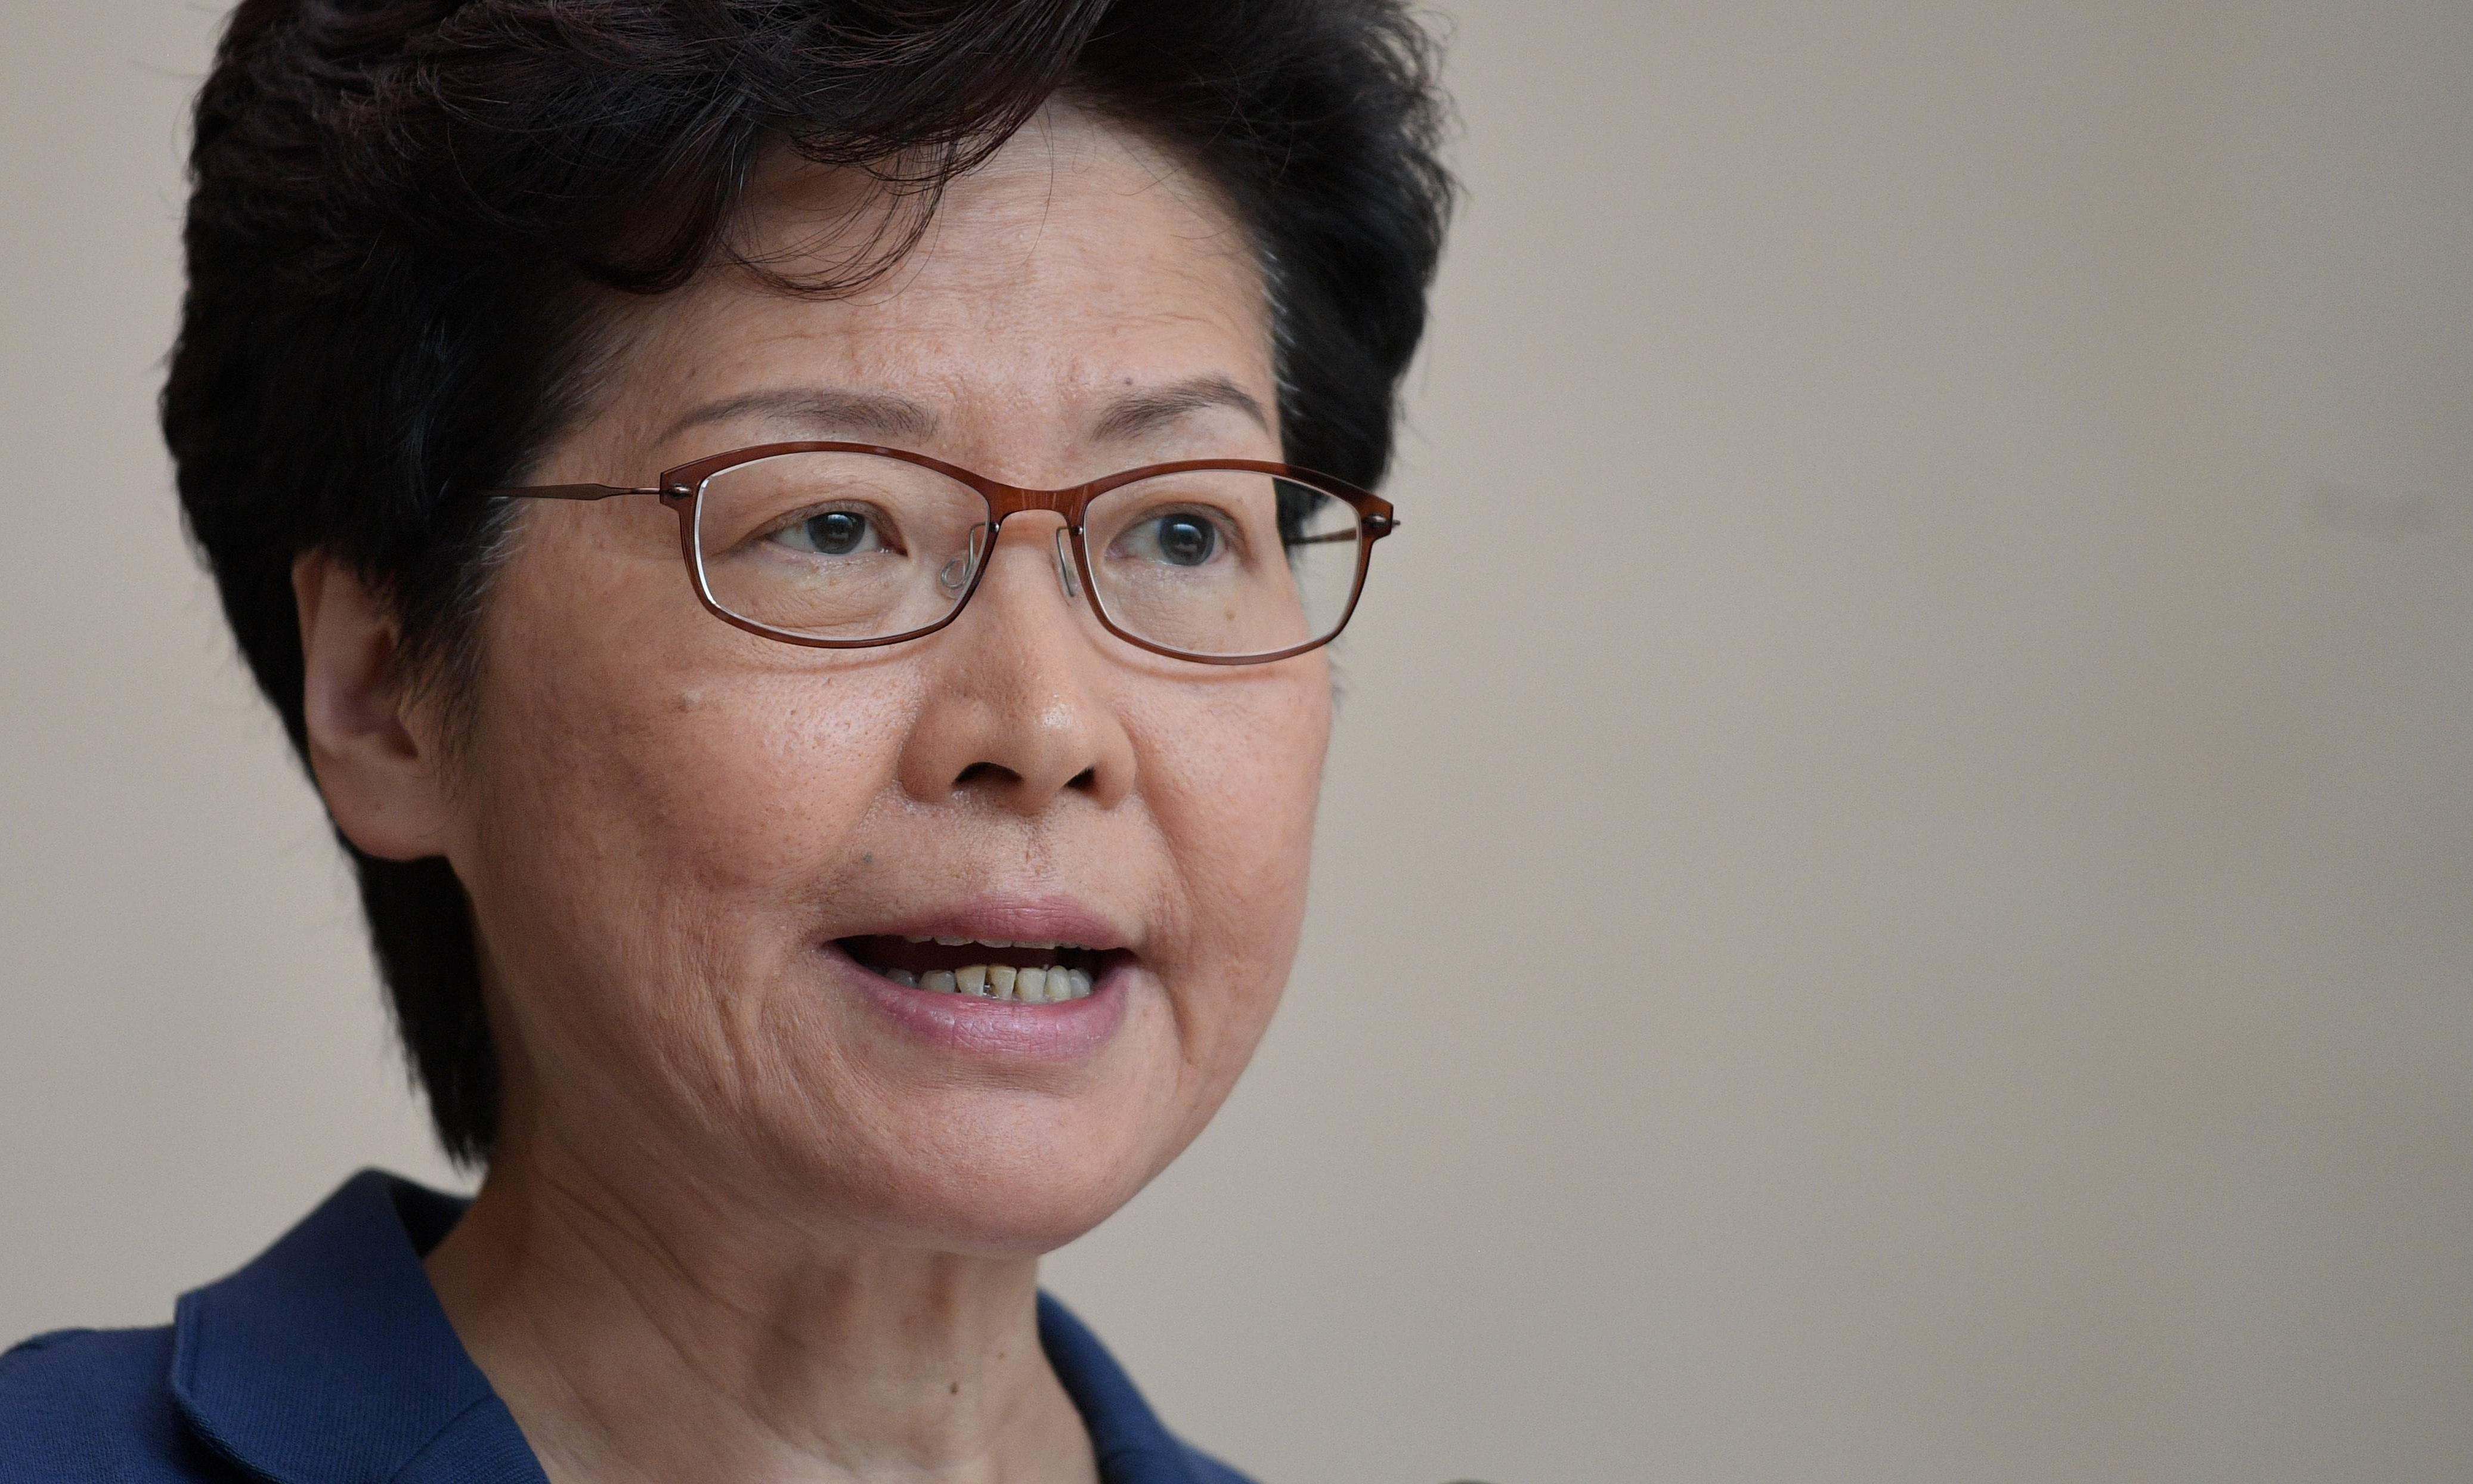 Hong Kong's Carrie Lam refuses to rule out asking China for help to quell protests